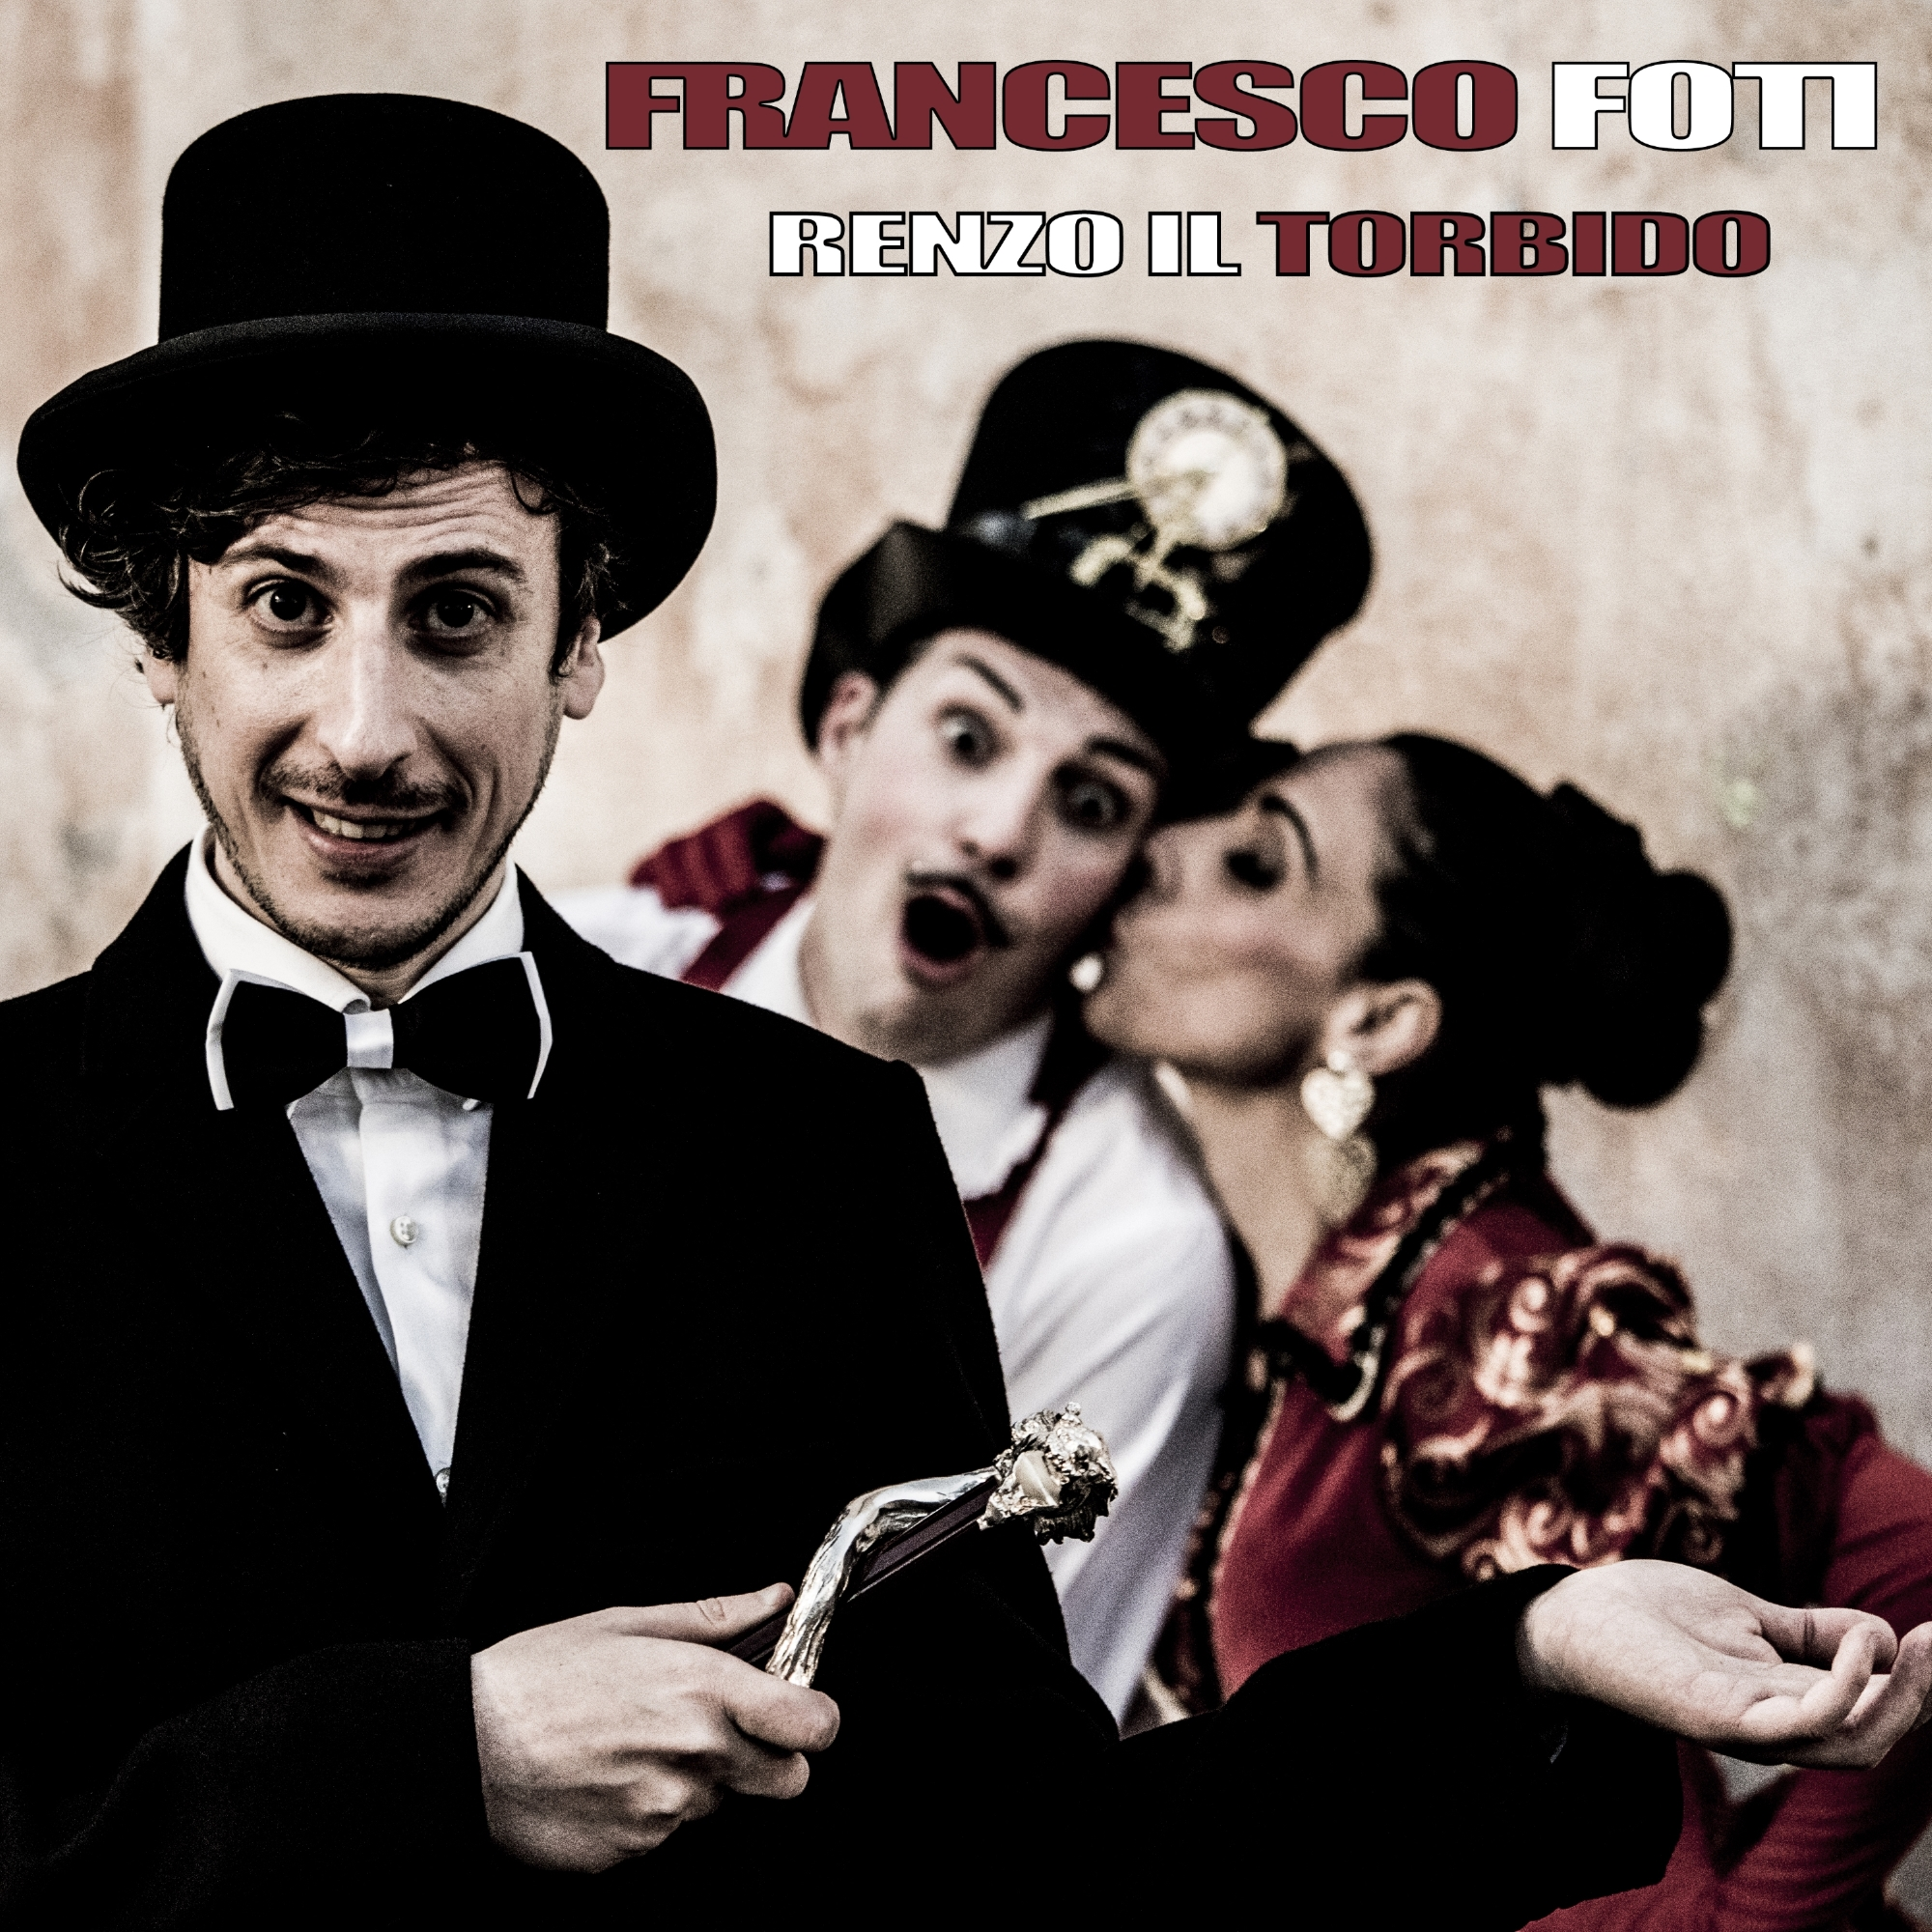 https://i0.wp.com/www.francescofoti.net/wp-content/uploads/2013/08/Francesco-Foti-Copertina-Renzo-il-torbido.jpg